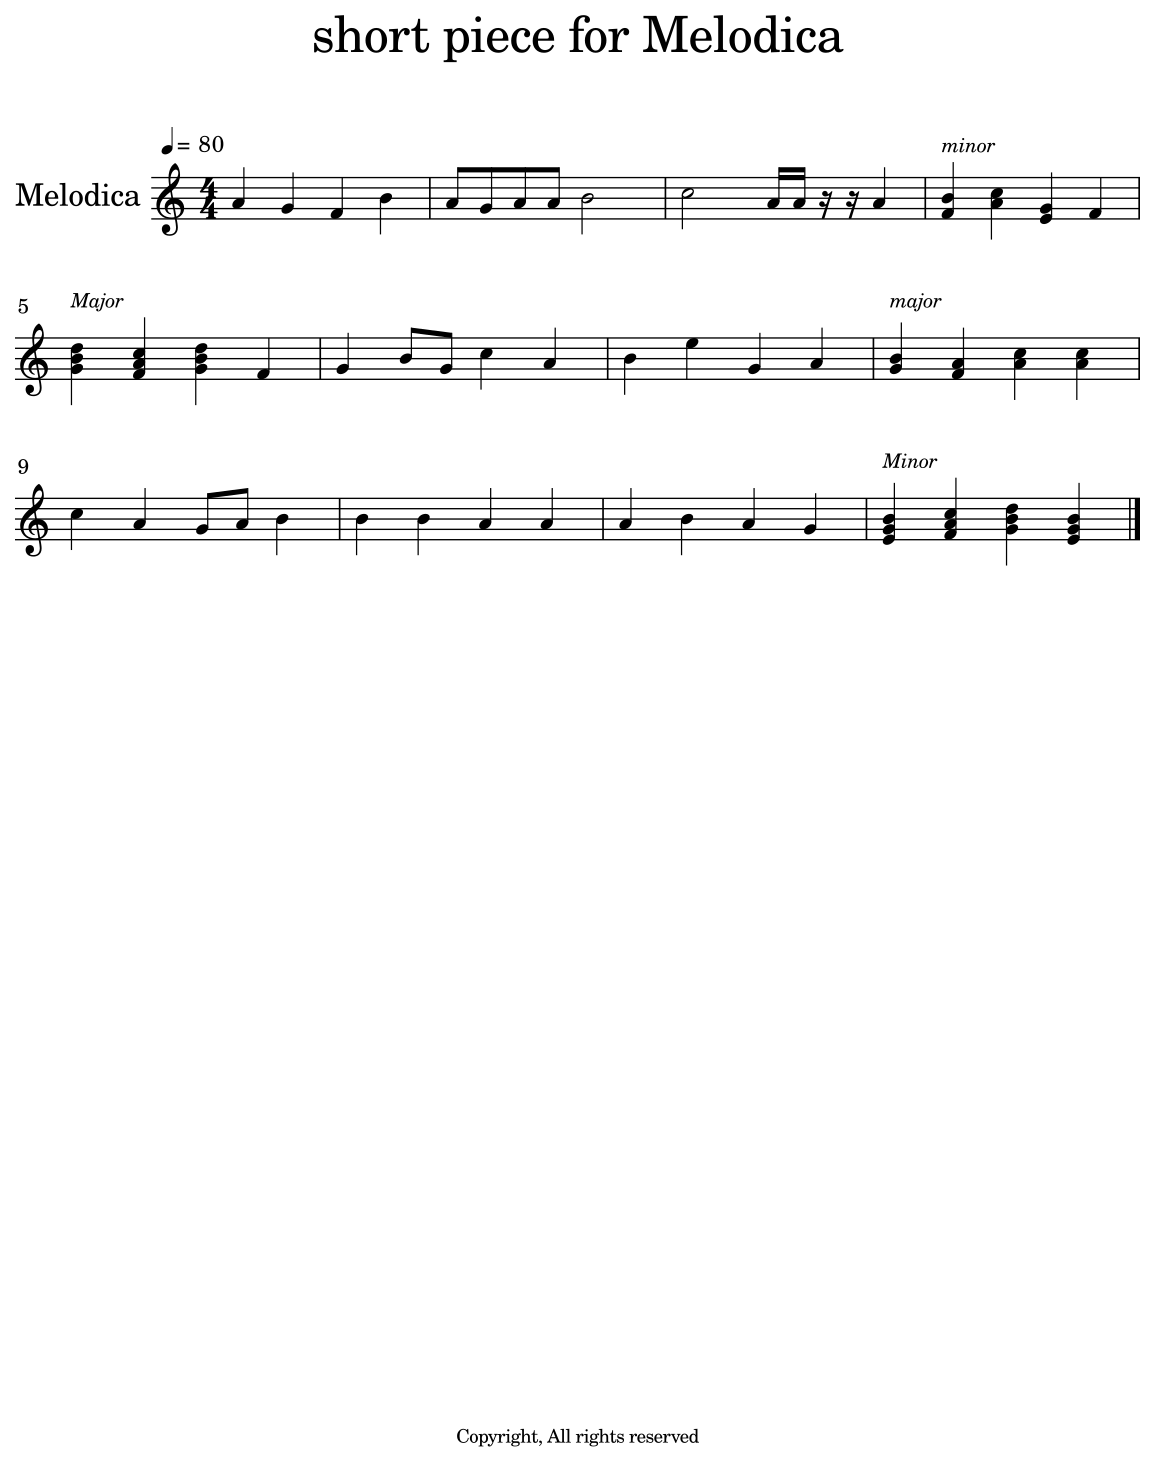 short piece for Melodica - Flat